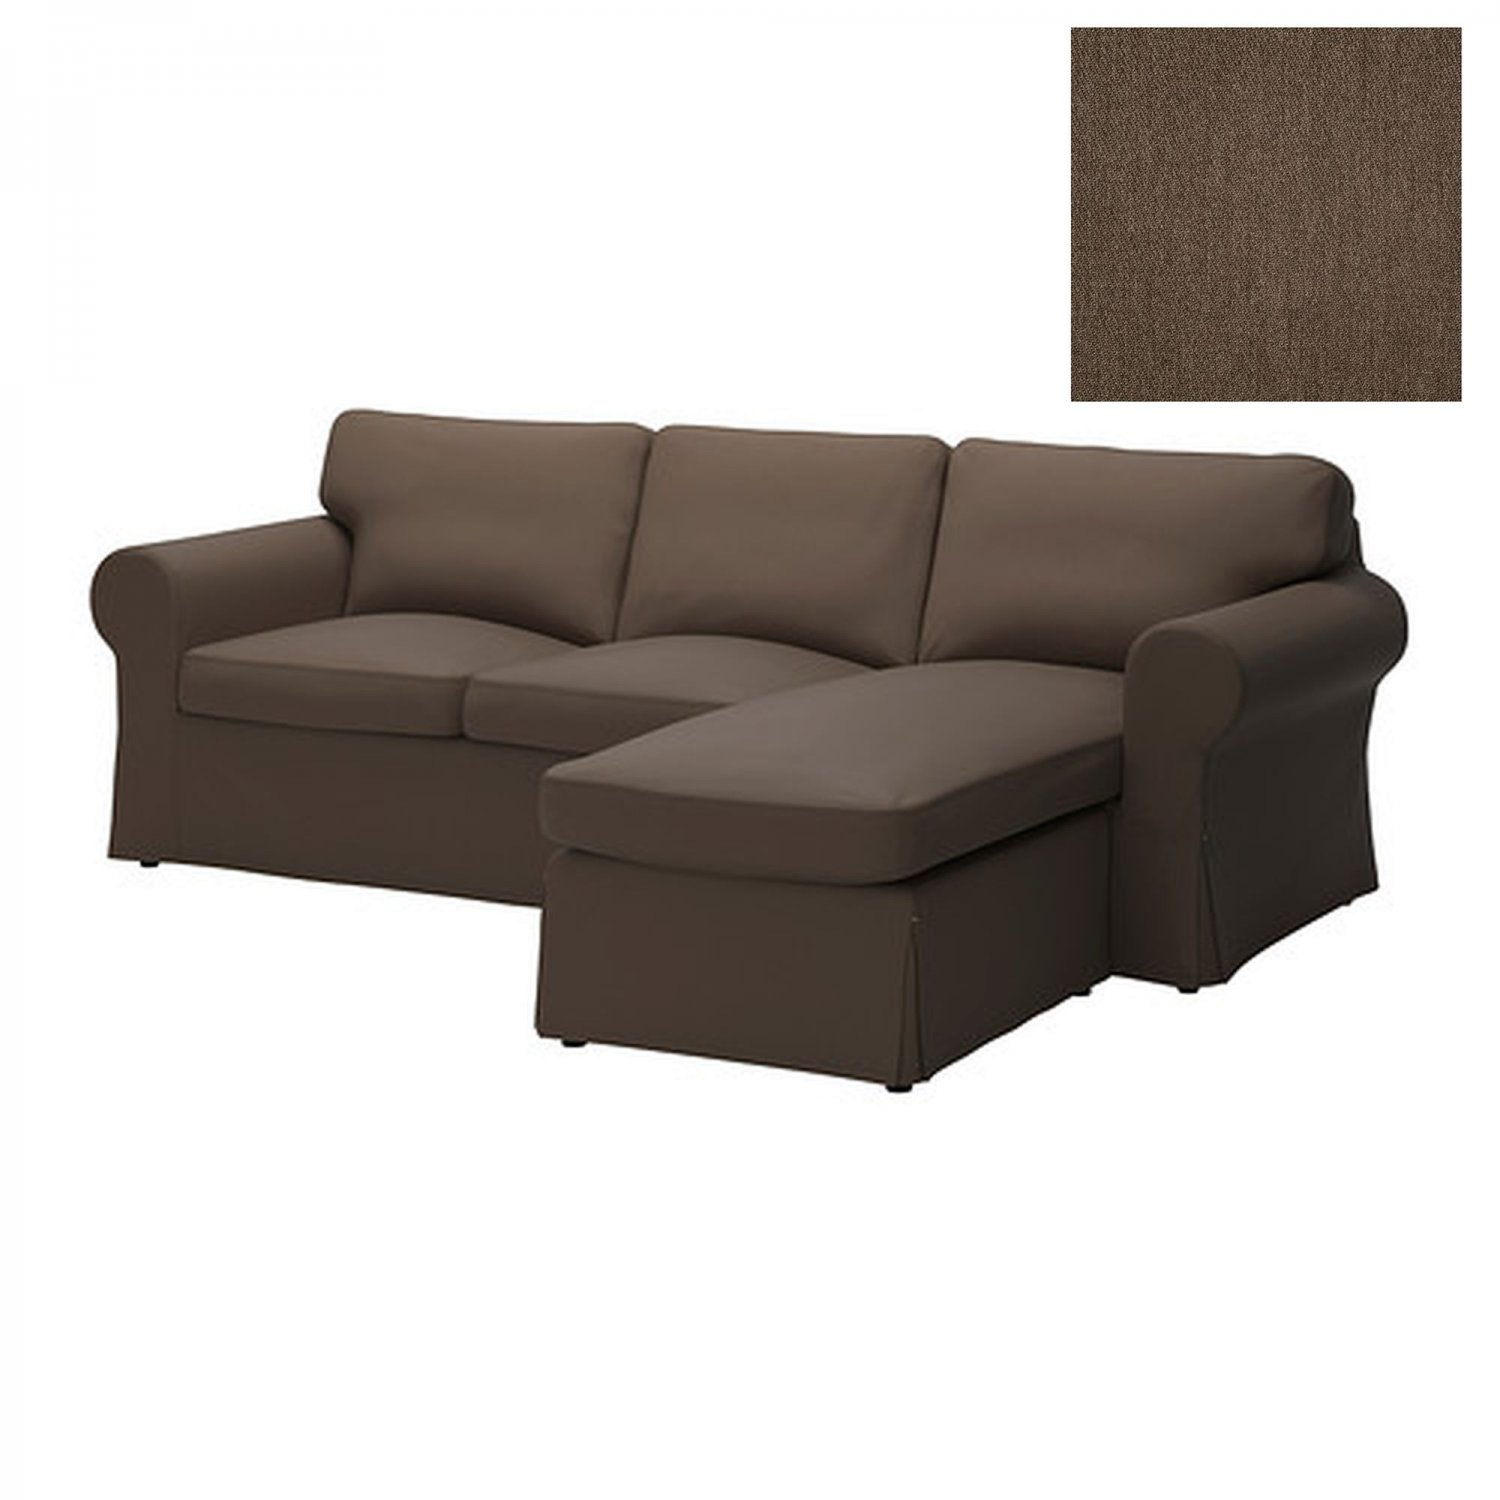 Chaise sofa cover for 2 seater lounge with chaise